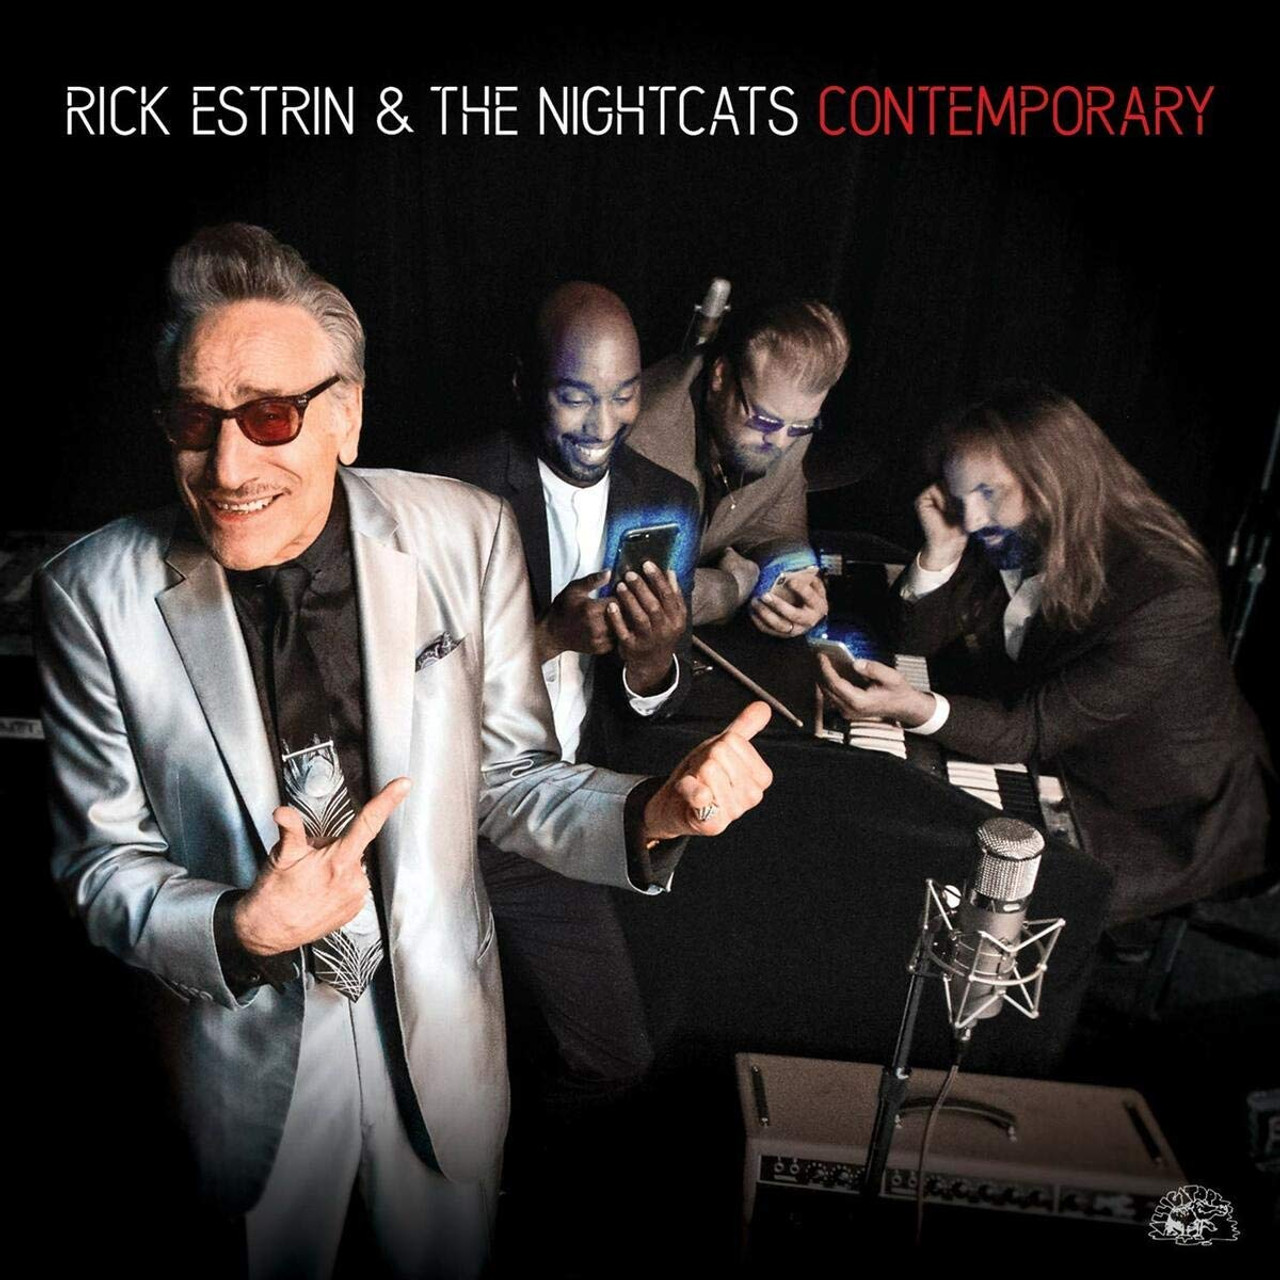 Rick Estrin & the Nightcats - Contemporary - PLUS A BONUS CD